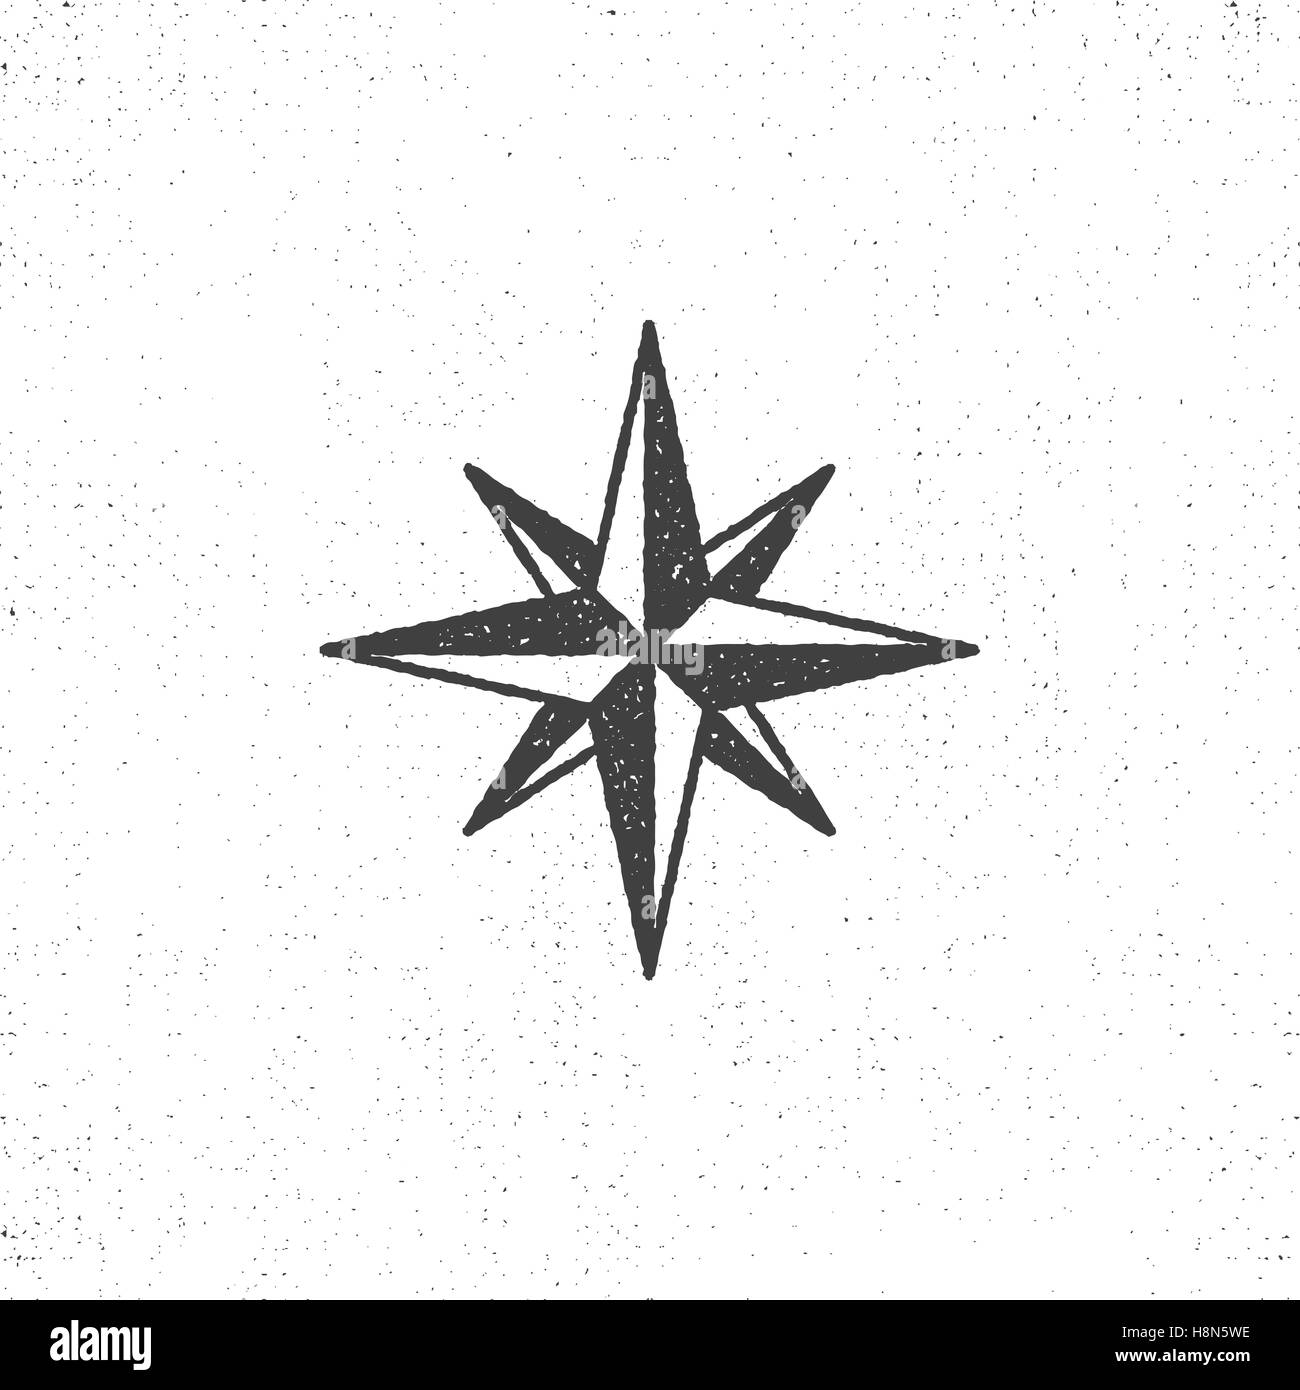 Vintage wind rose symbol or icon in rough silhouette nautical style, monochrome design. Can be used for T-shirts - Stock Image